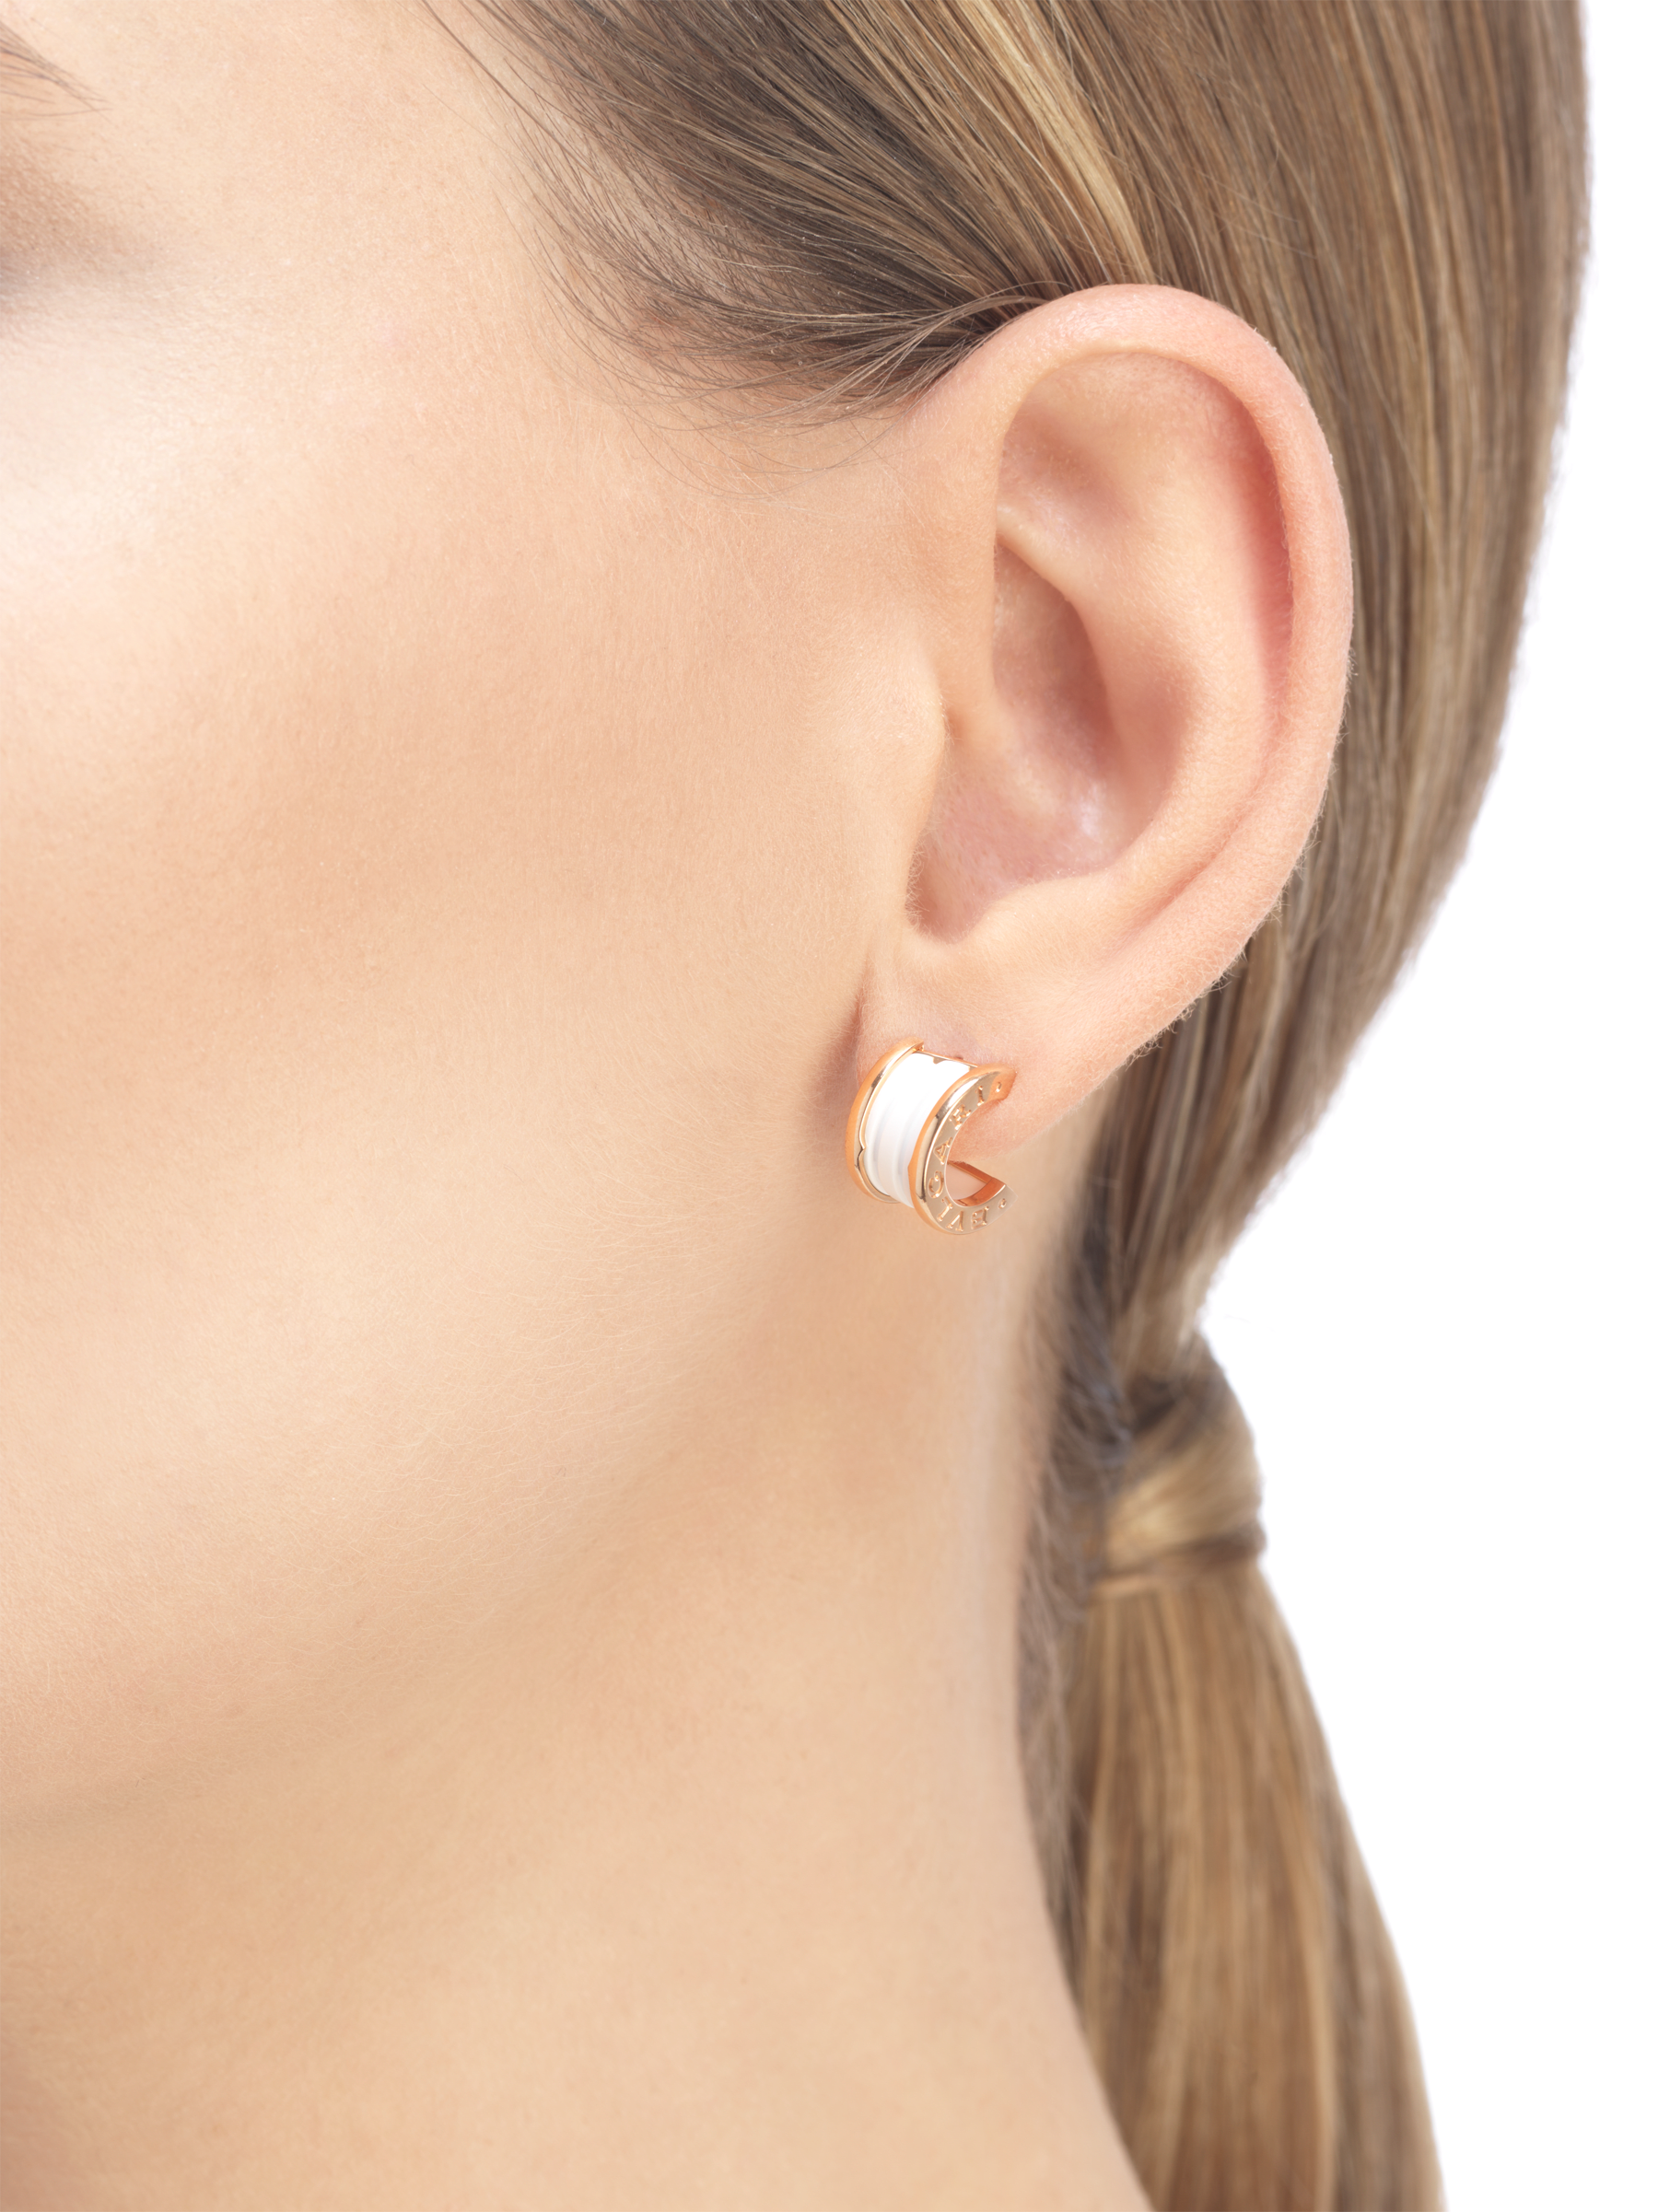 B.zero1 earrings in 18kt rose gold and white ceramic. 346464 image 3